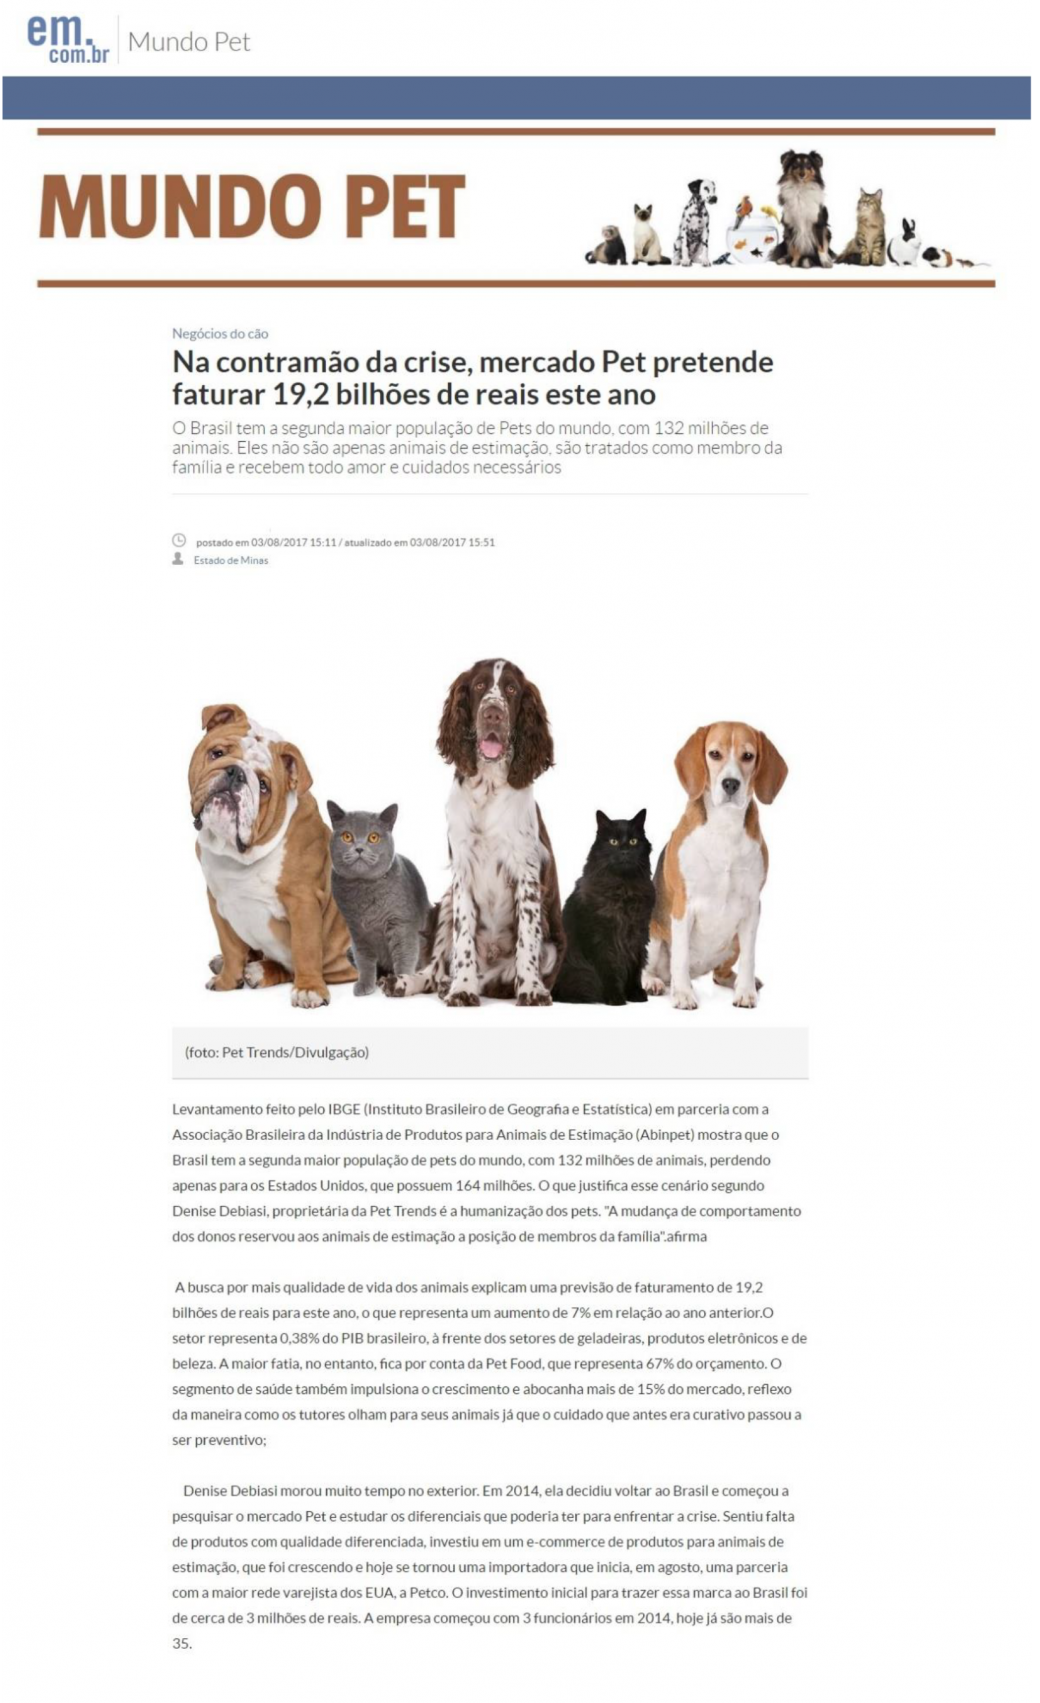 Estado de Minas fala sobre o Mercado Pet